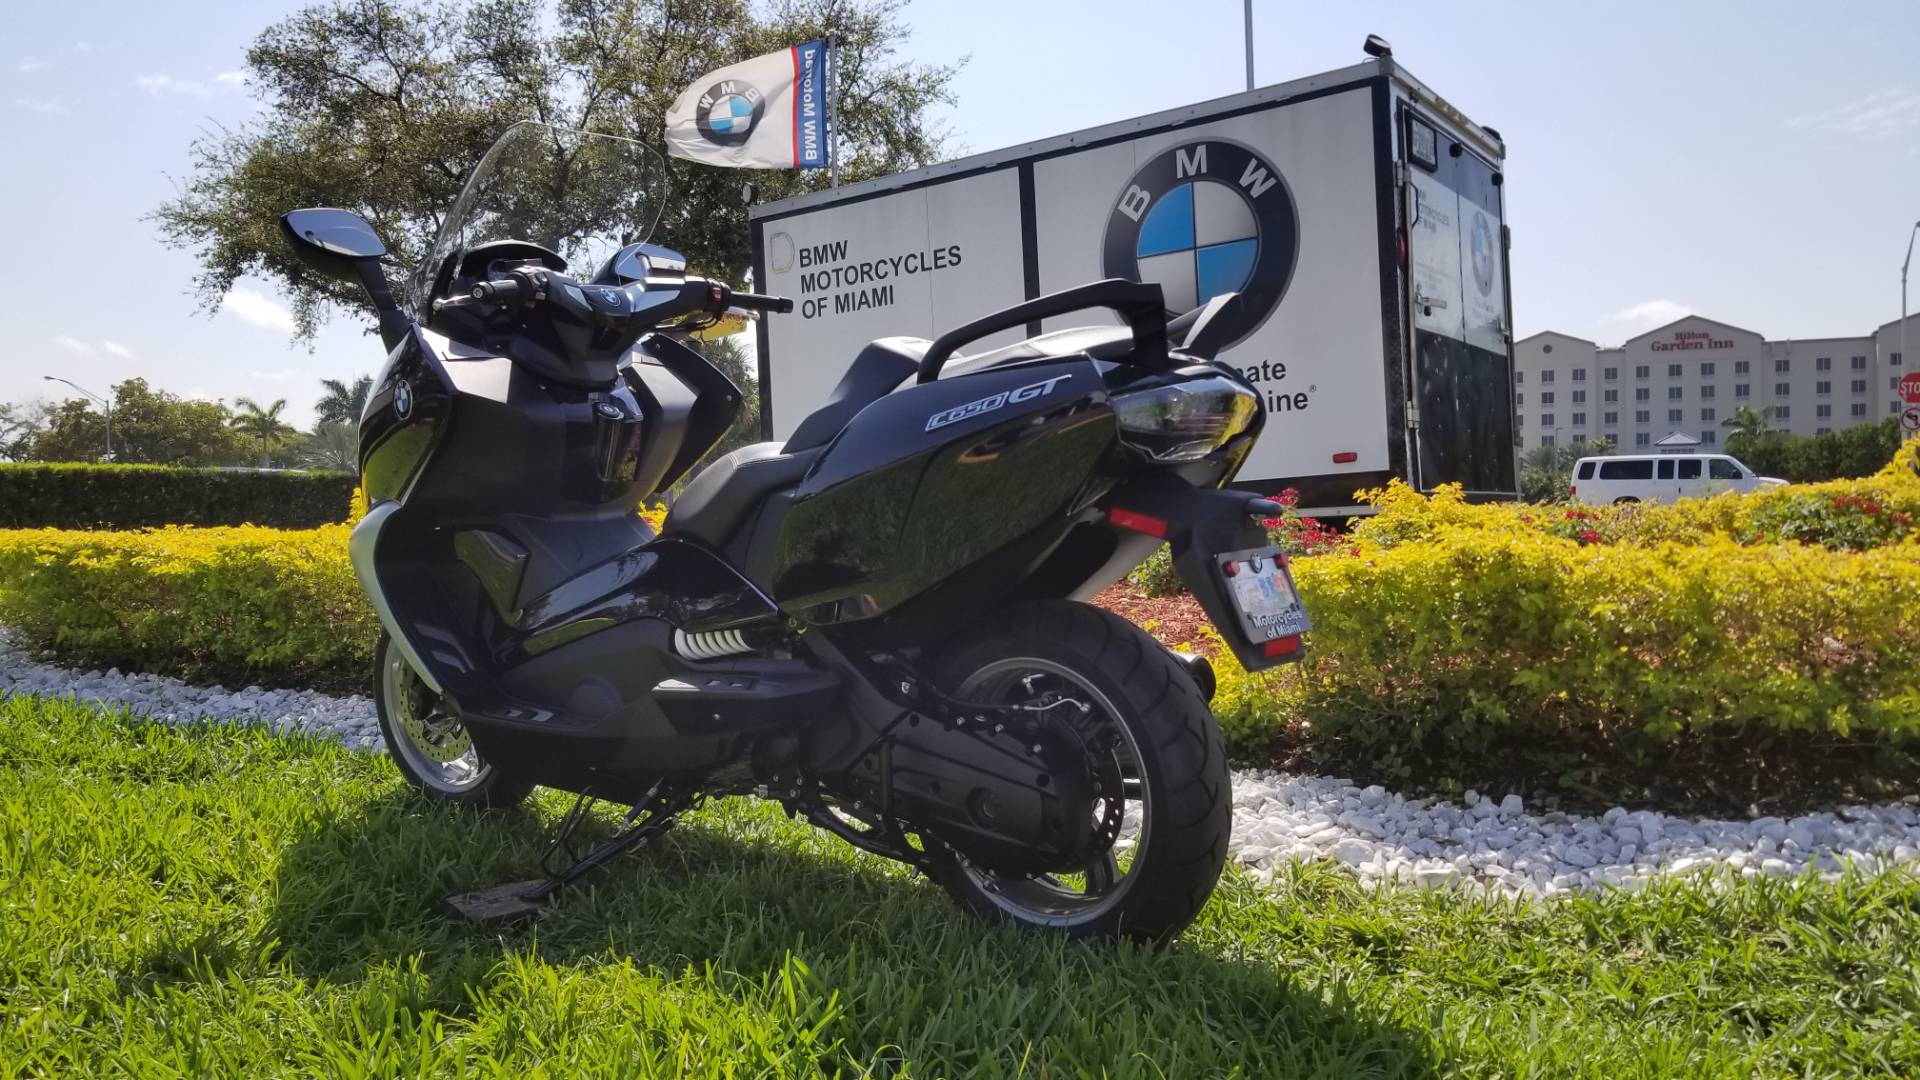 New 2019 BMW C 650 GT for sale, BMW C 650GT for sale, BMW Motorcycle C650GT, new BMW Scooter, Maxi Scooter, BMW. BMW Motorcycles of Miami, Motorcycles of Miami, Motorcycles Miami, New Motorcycles, Used Motorcycles, pre-owned. #BMWMotorcyclesOfMiami #MotorcyclesOfMiami #MotorcyclesMiami - Photo 11